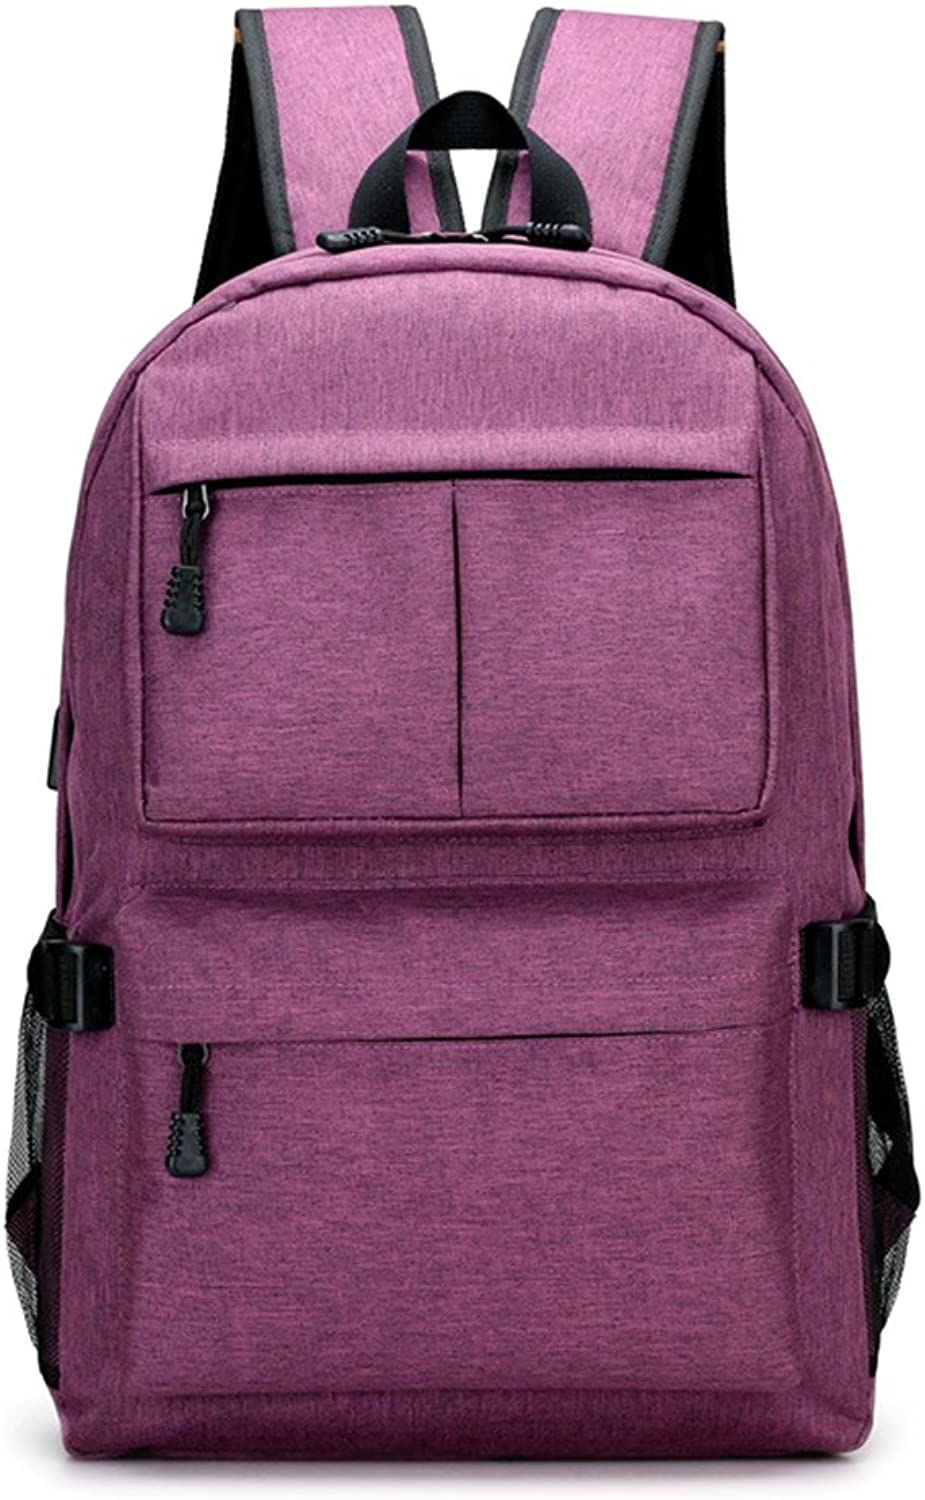 Lamdoo Men Oxford Laptop Backpack with USB Charge Port Travel School Bags Anti-Theft Purple